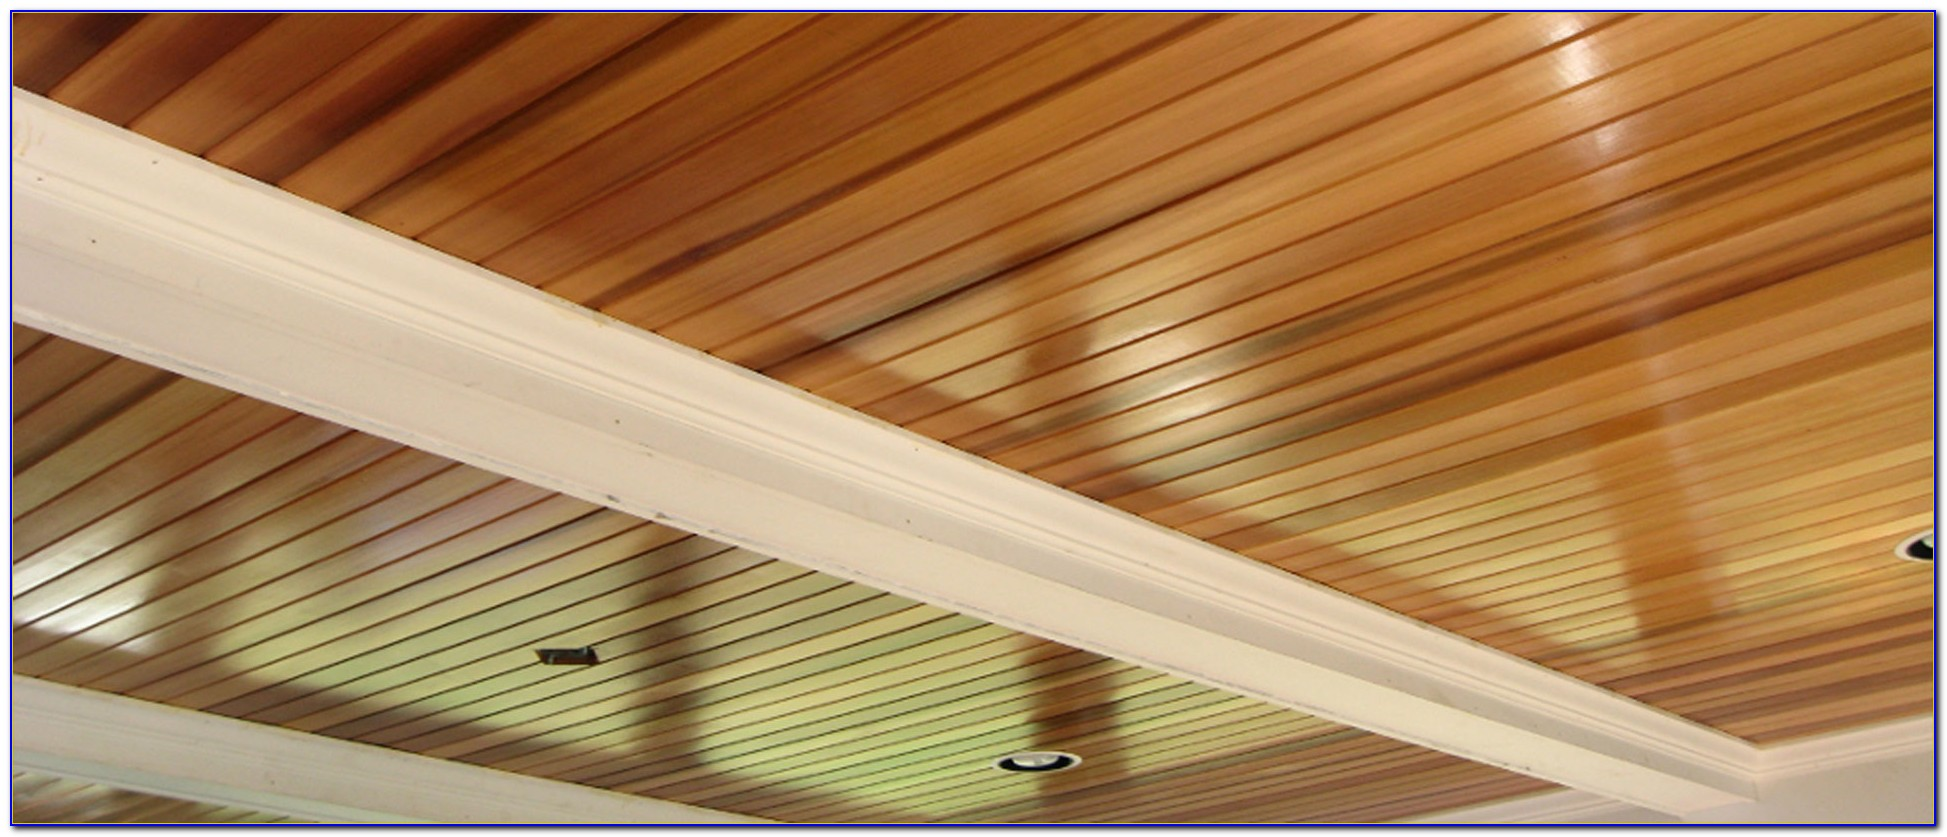 Pvc Tongue And Groove Ceiling Panels